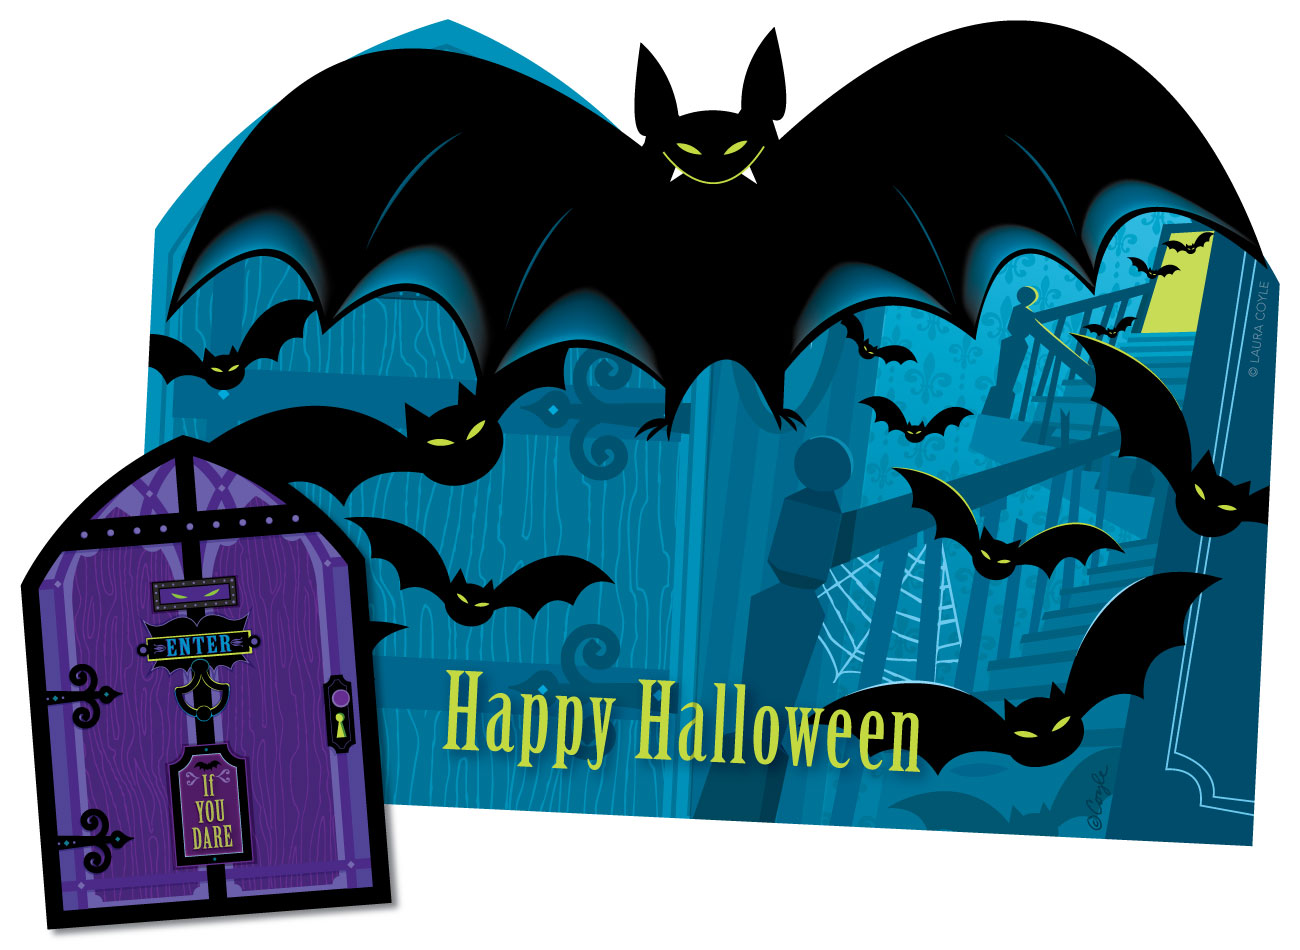 Bats! Pop-Up Card